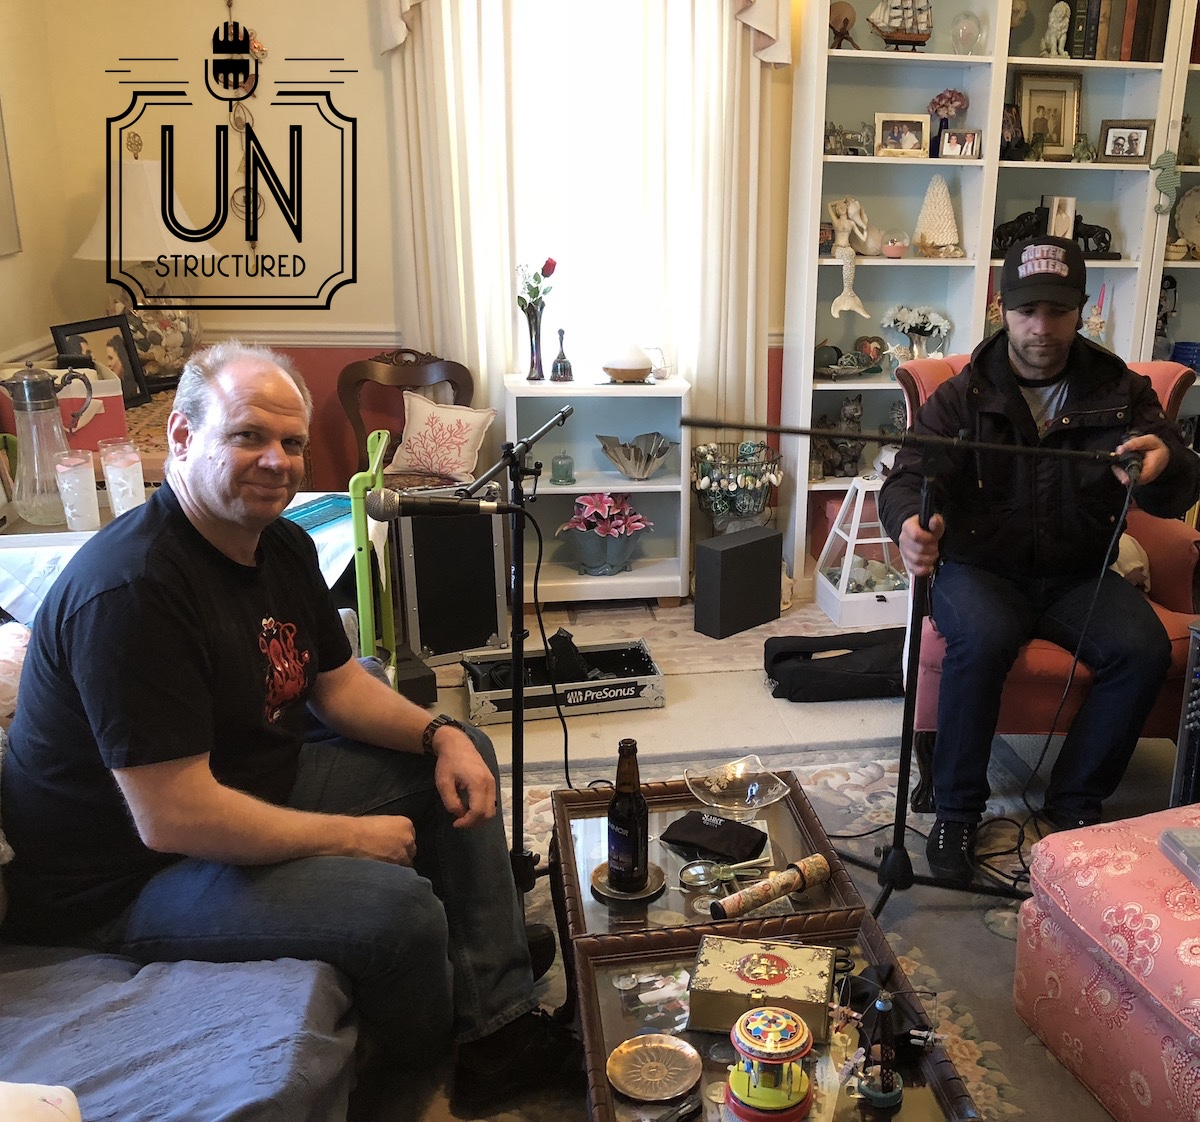 007 - Addendum 02: Isaiah Gooley - Unique wide-ranging and well-researched unstructured interviews hosted by Eric Hunley UnstructuredPod Dynamic Informal Conversations